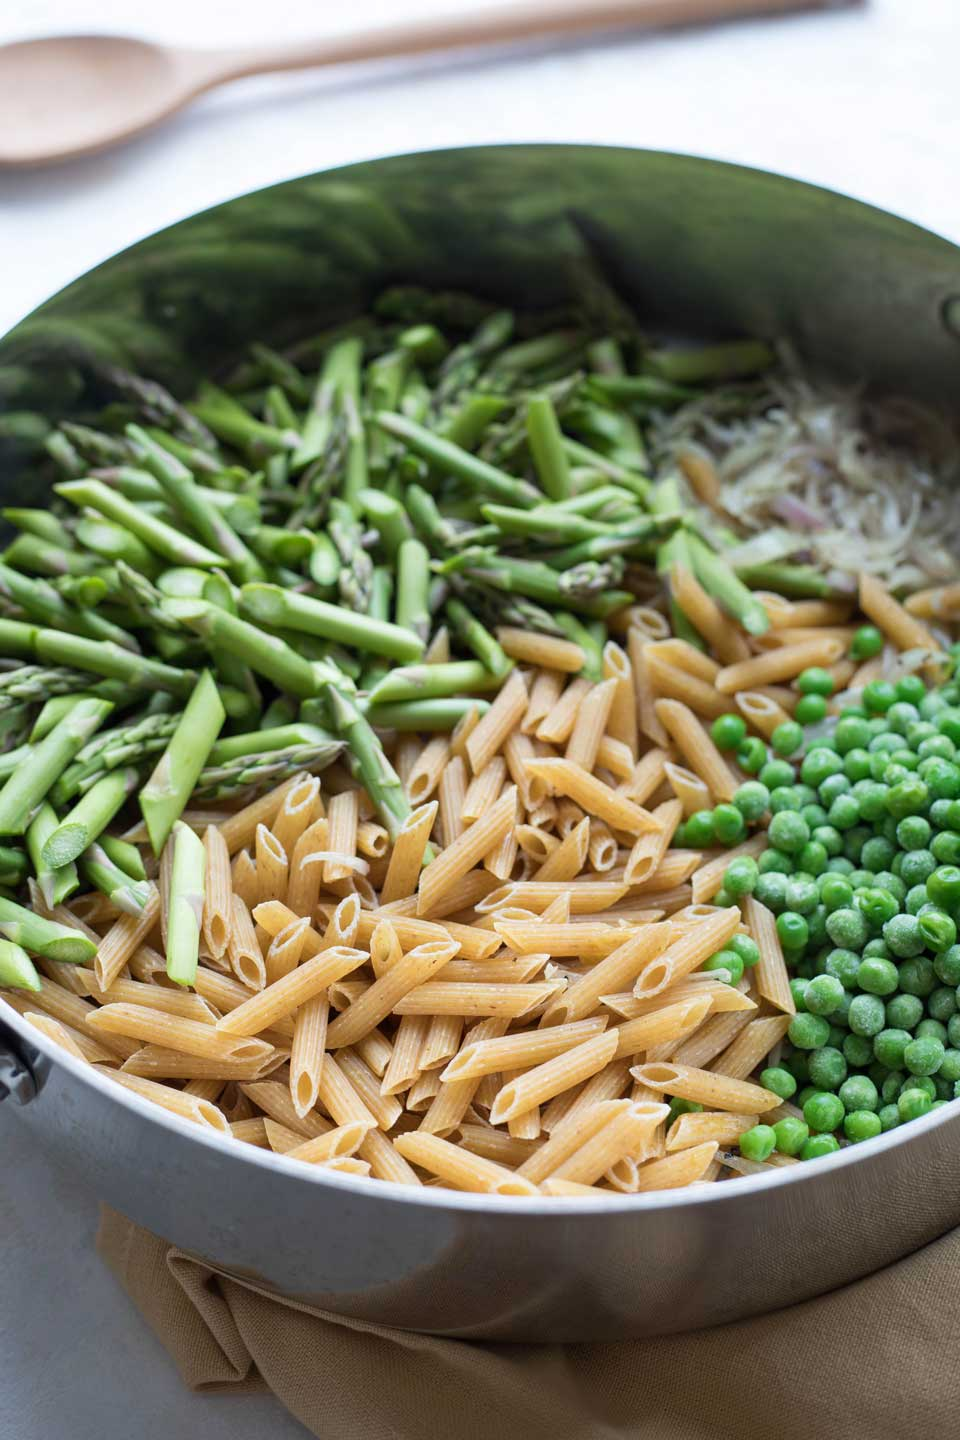 A one-pot meal that's ready in 30 minutes or less! This Whole-Wheat Pasta with Asparagus recipe is truly a busy home cook's dream!